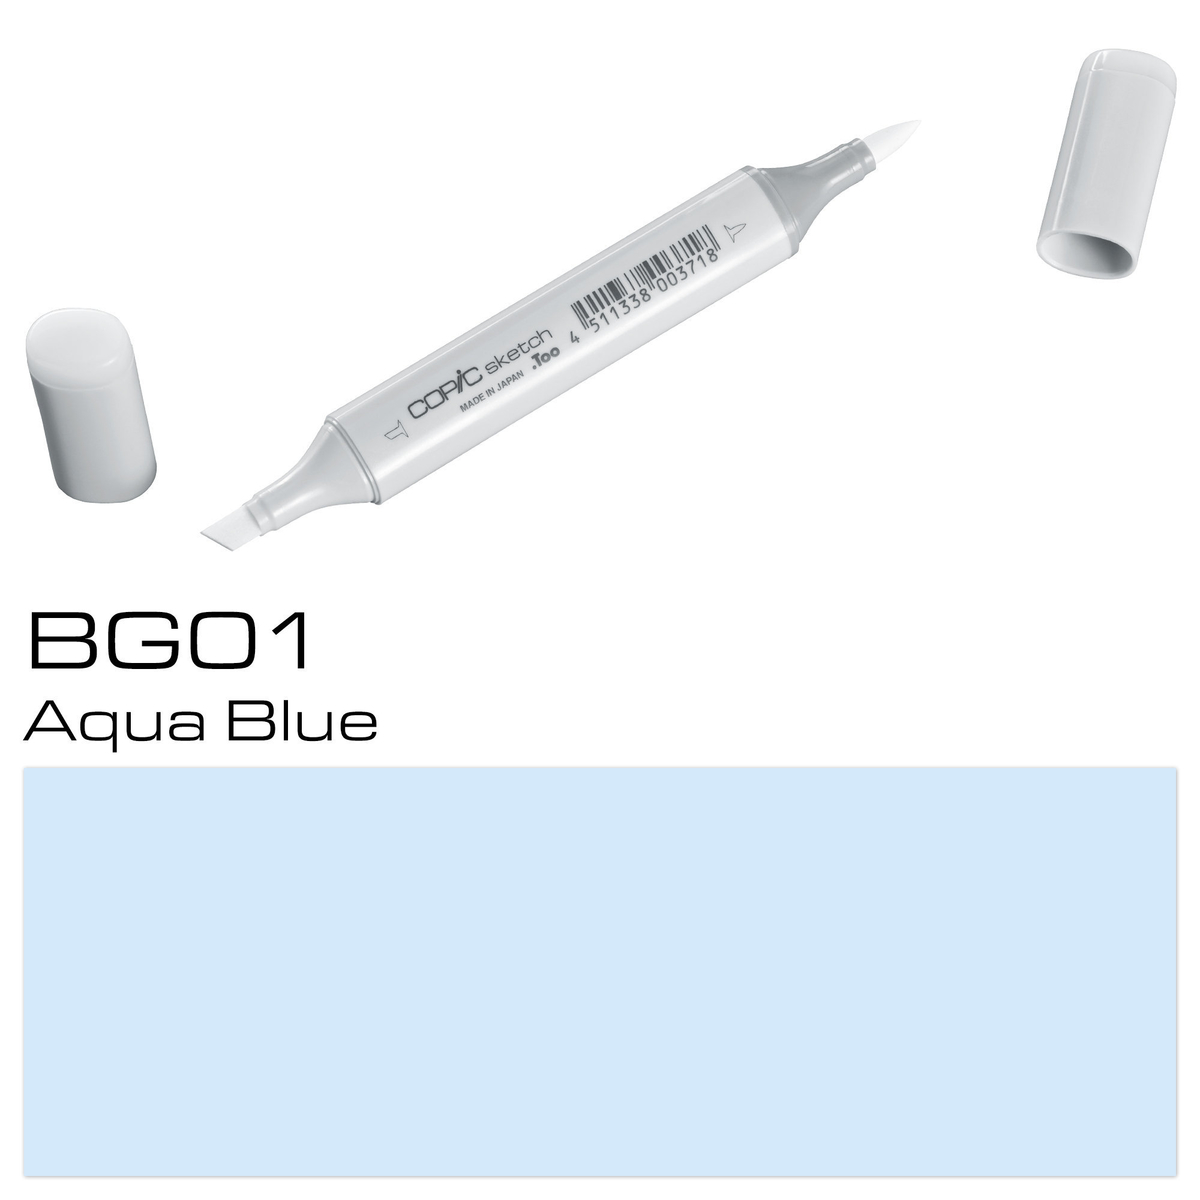 Copic Sketch BG 01 aqua blue